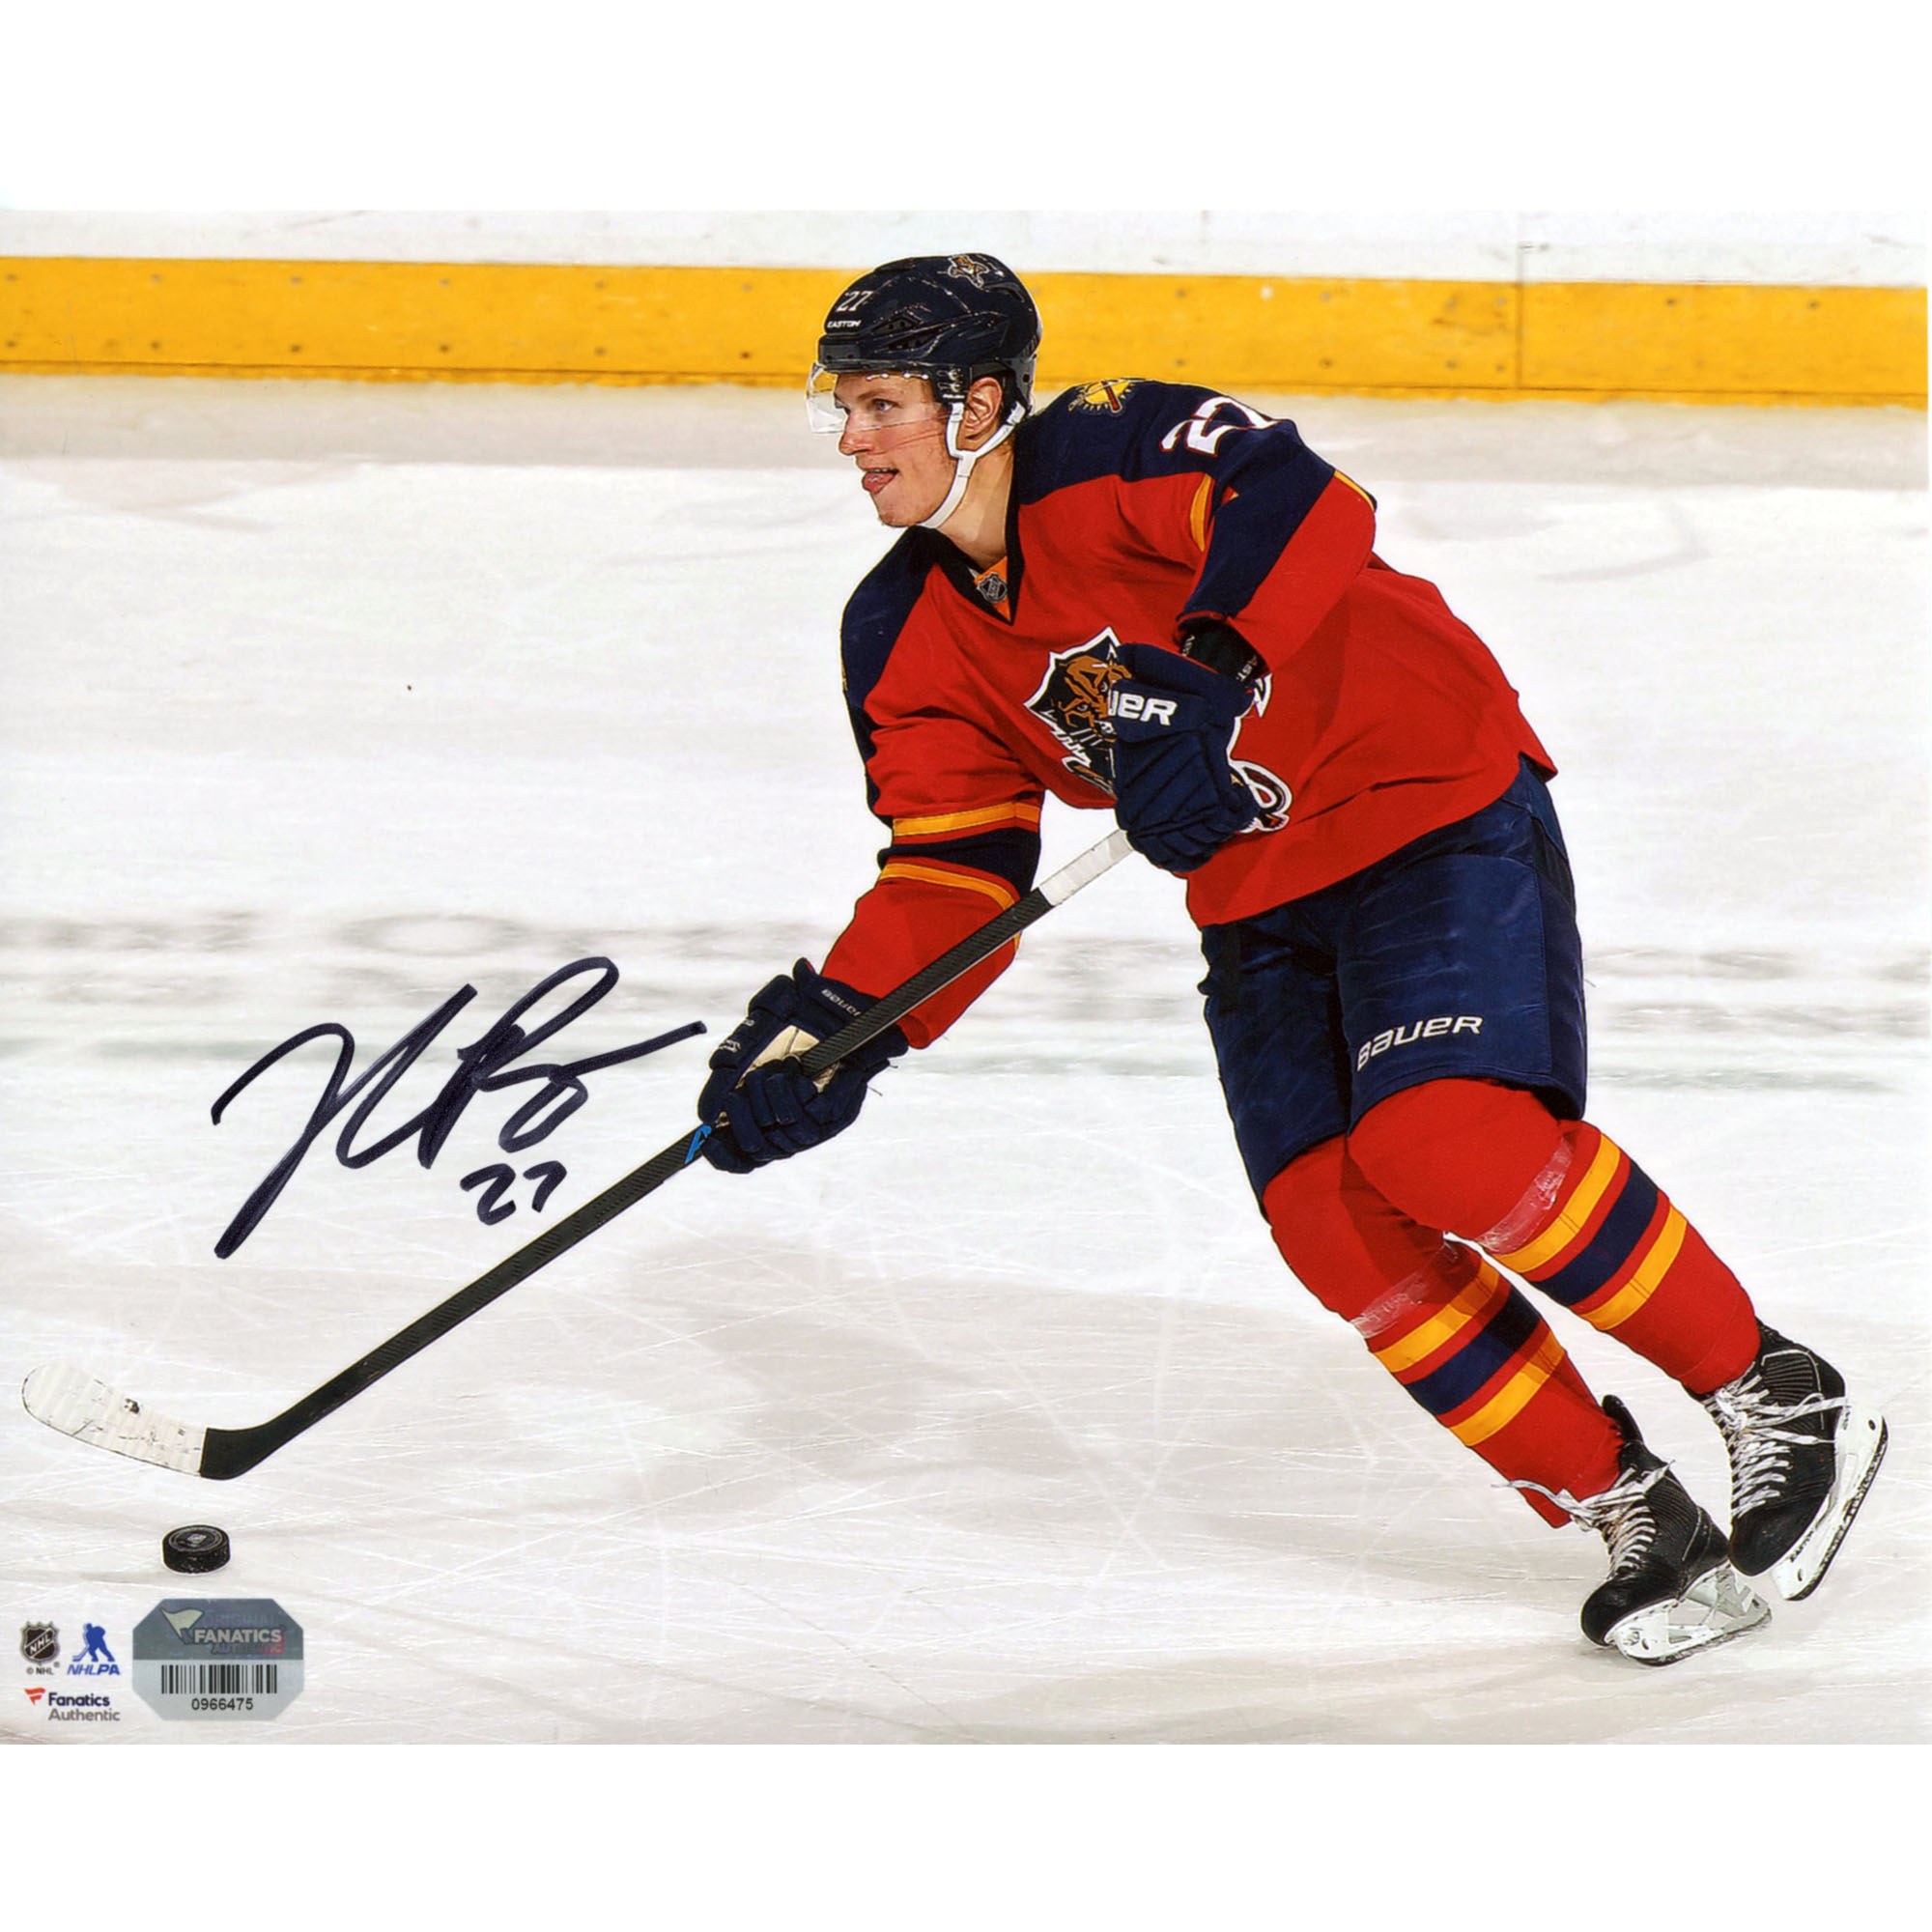 """Nick Bjugstad Florida Panthers Fanatics Authentic Autographed 8"""" x 10"""" Red Jersey Skating With Puck Photograph - No Size"""